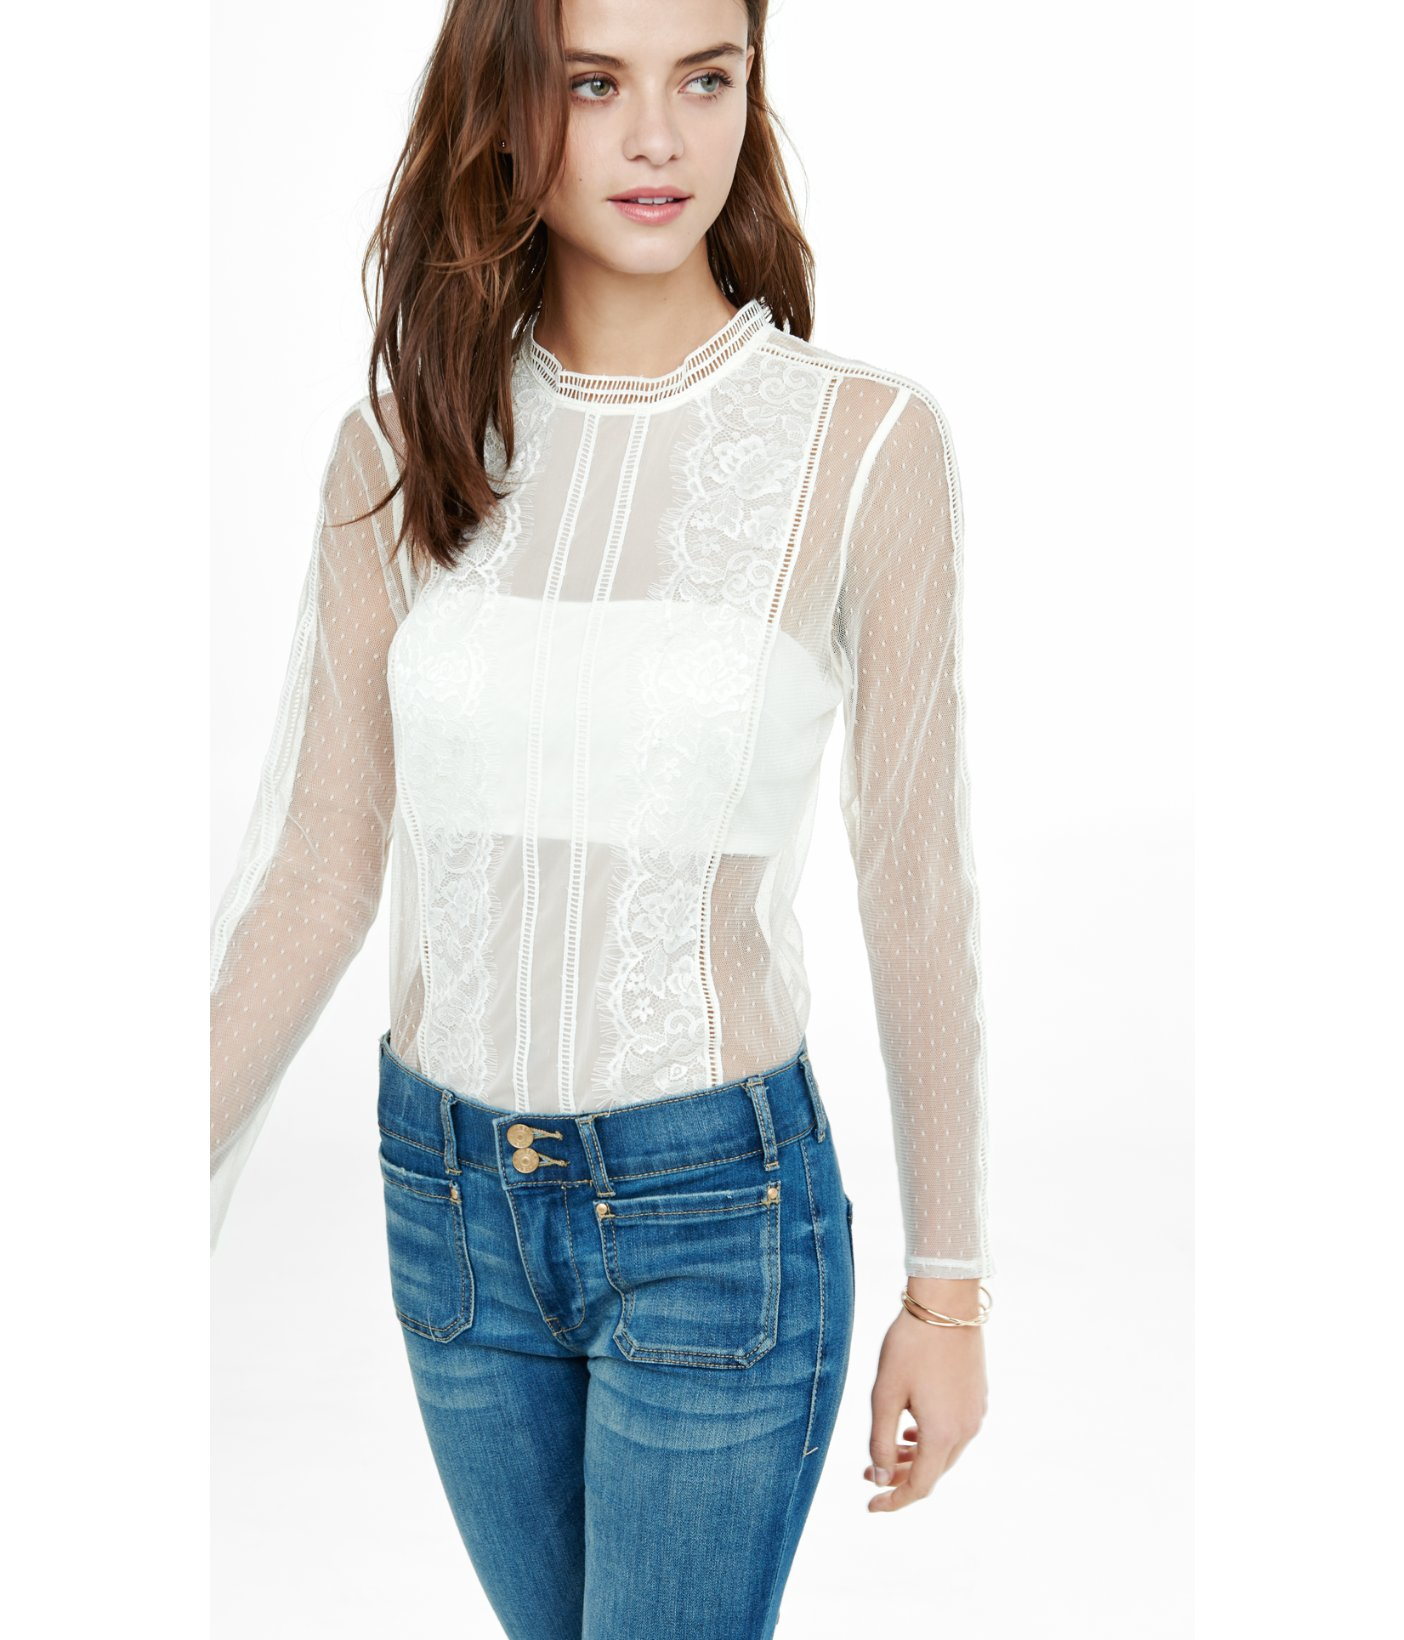 934c1a6f8b Express Lace And Mesh Blouse With Bandeau in White - Lyst